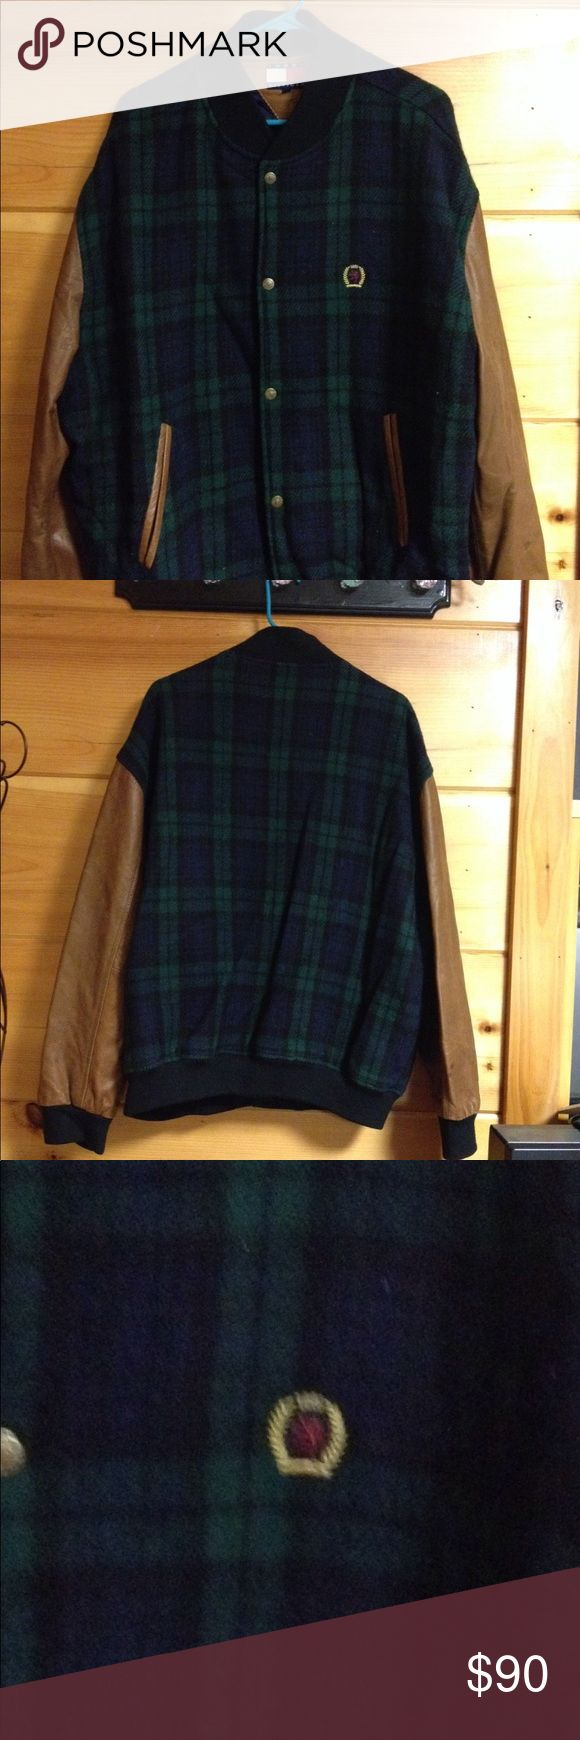 Tommy Hilfiger vintage bomber jacket wool Good condition green and blue plaid Tommy Hilfiger wool bomber jacket.  Please note stains on each sleeve.  Could possibly be removed when dry cleaned.  Please see pics.  Size XL Tommy Hilfiger Jackets & Coats Bomber & Varsity